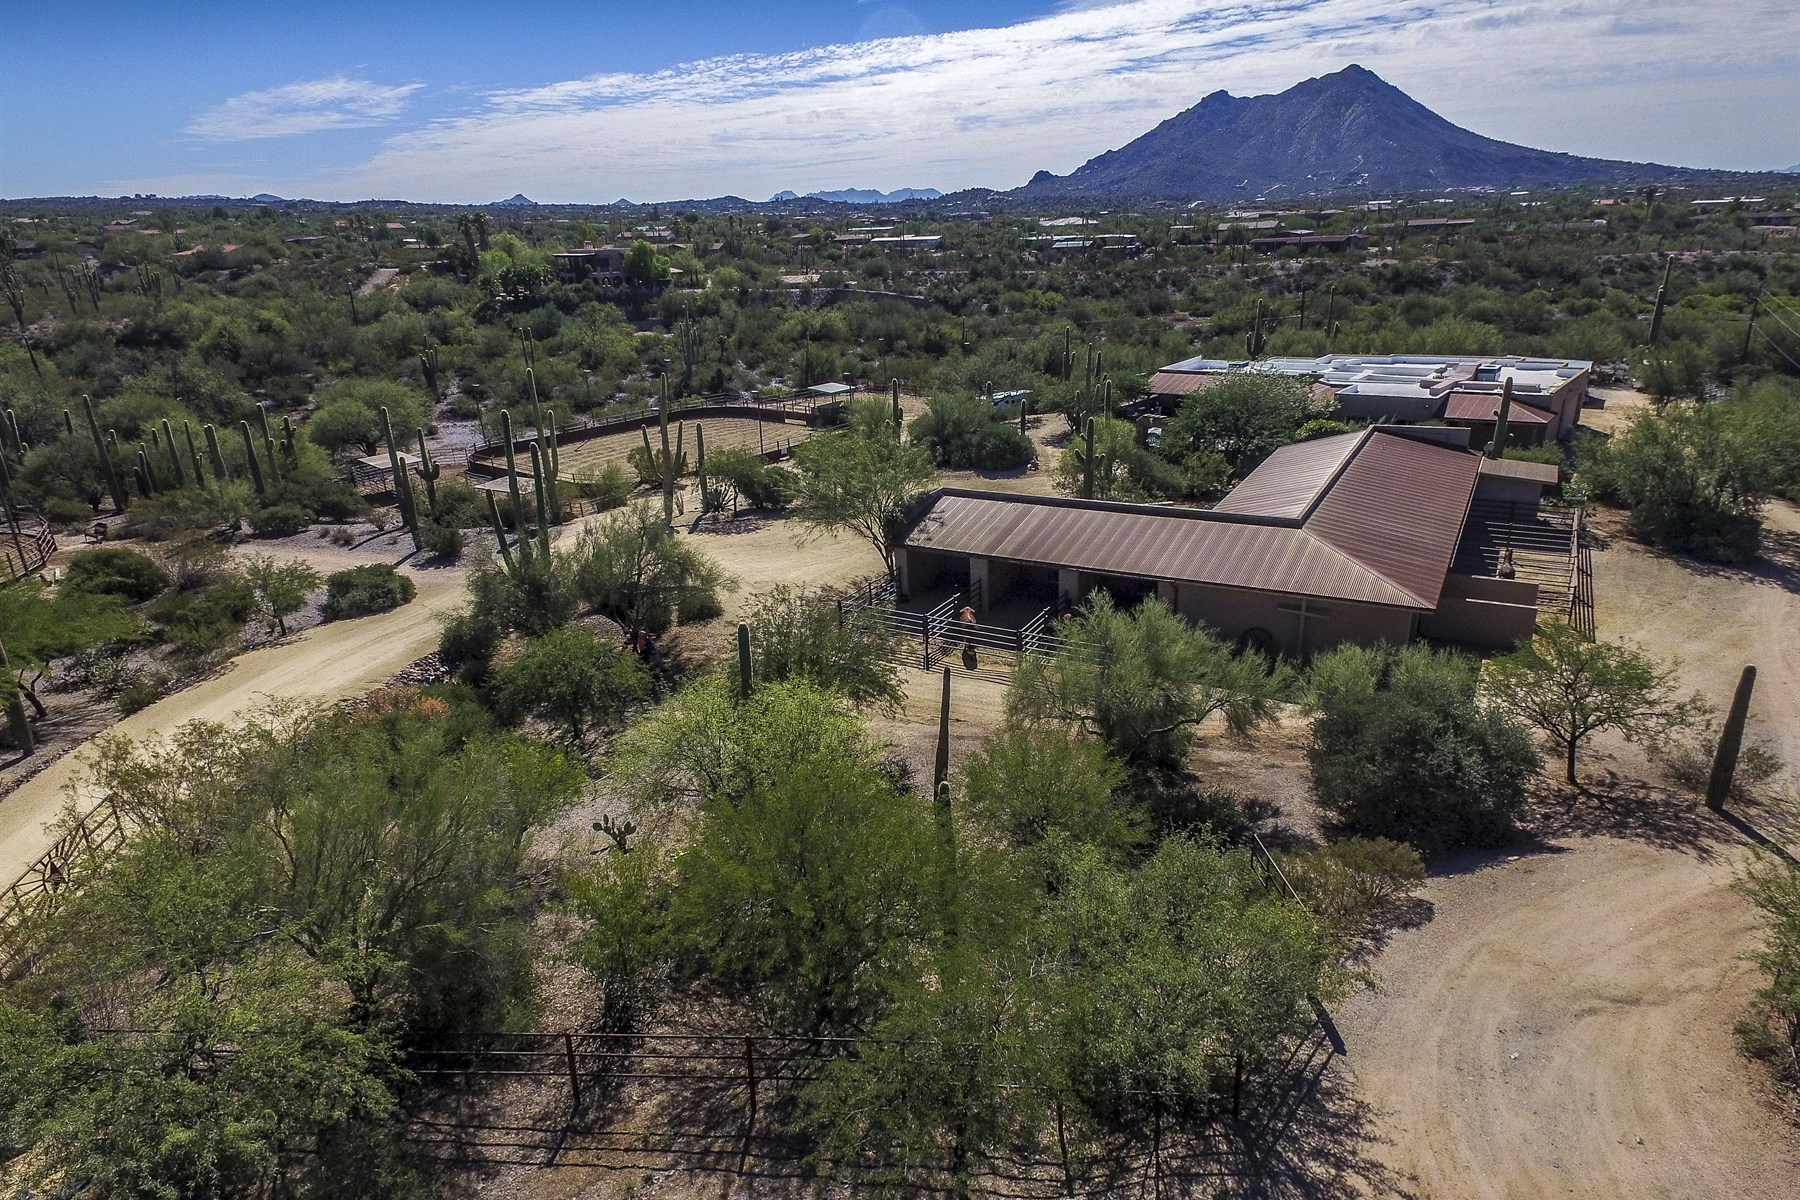 一戸建て のために 売買 アット Picturesque gated ranch has panoramic mountain views 6125 E Fleming Springs Rd Cave Creek, アリゾナ, 85331 アメリカ合衆国